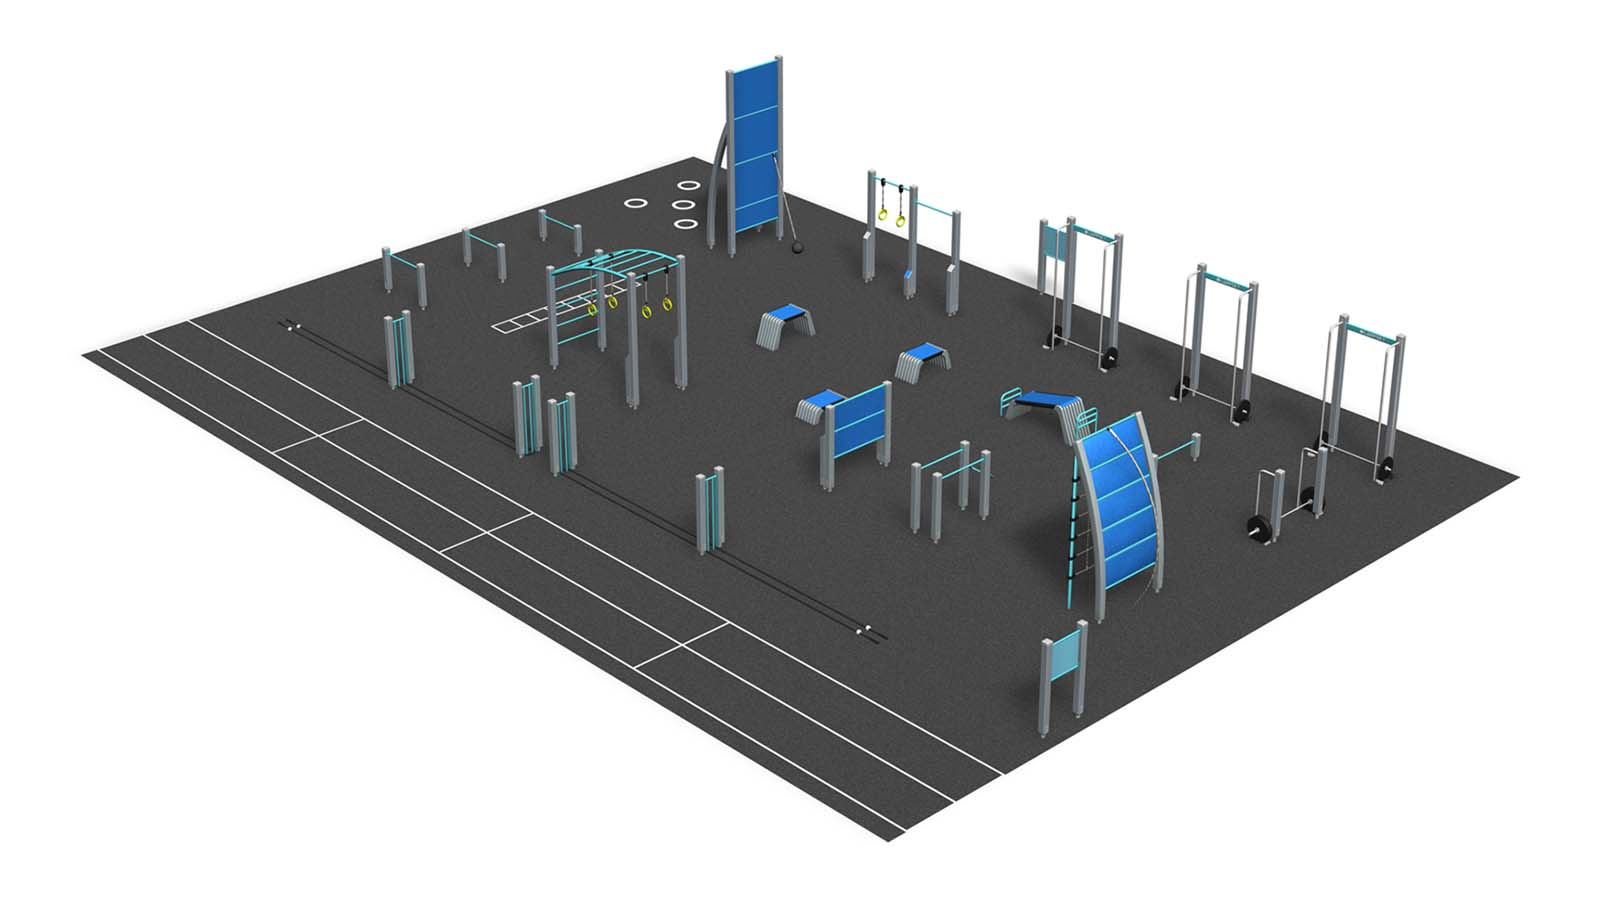 OUTDOOR-GYM-PLANNING-GUIDE.jpg